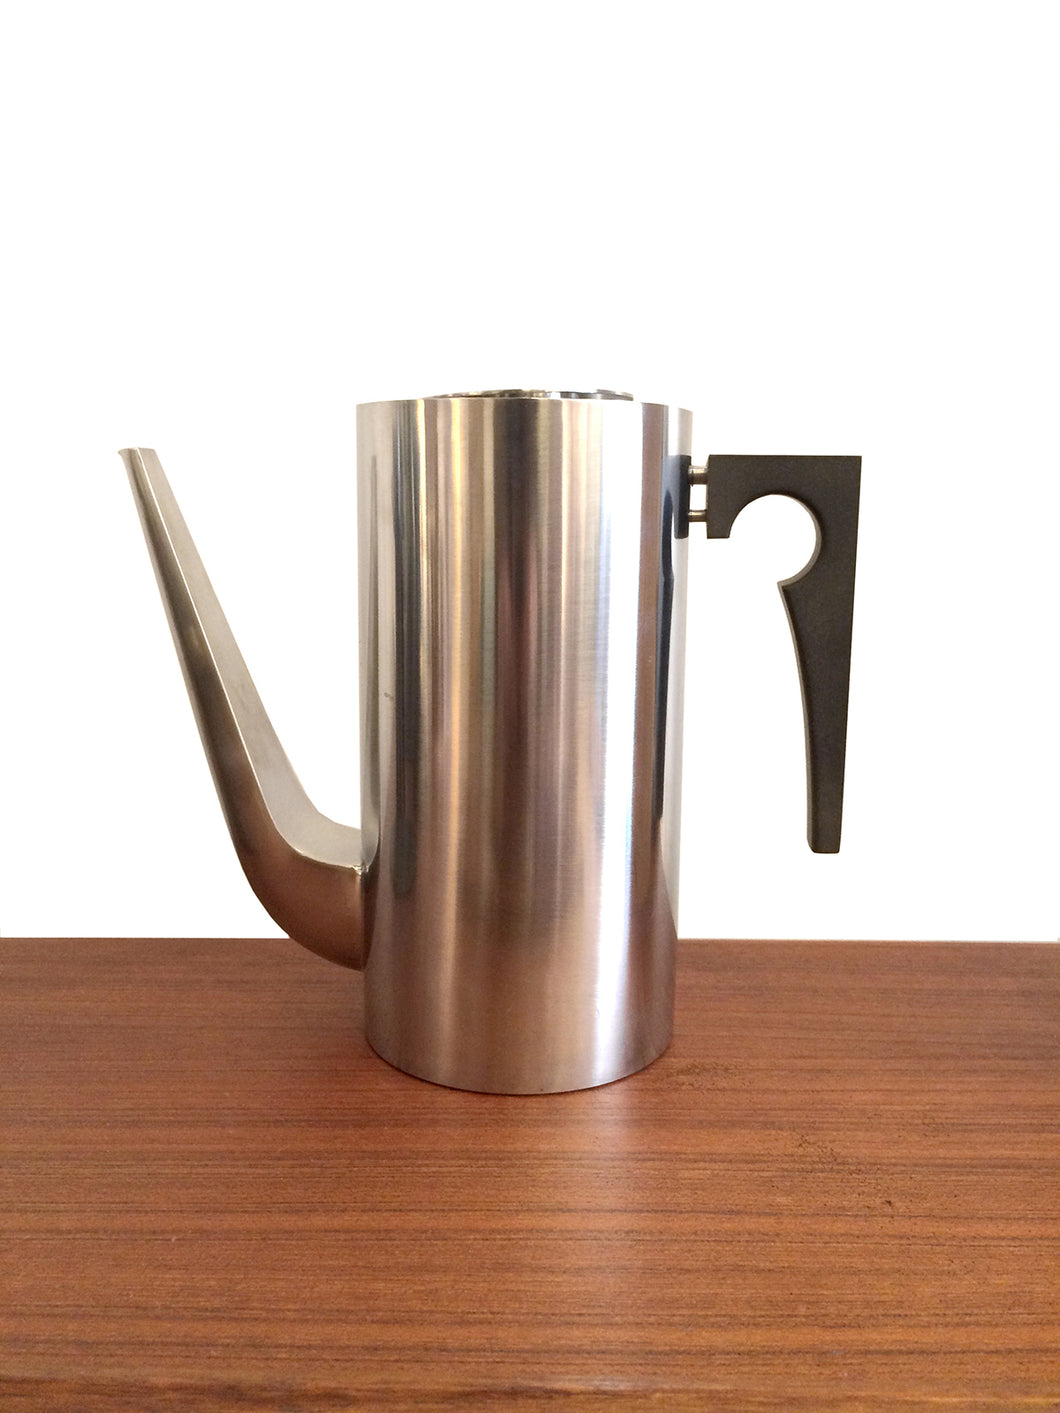 Original Stelton Coffee Pot by Arne Jacobsen